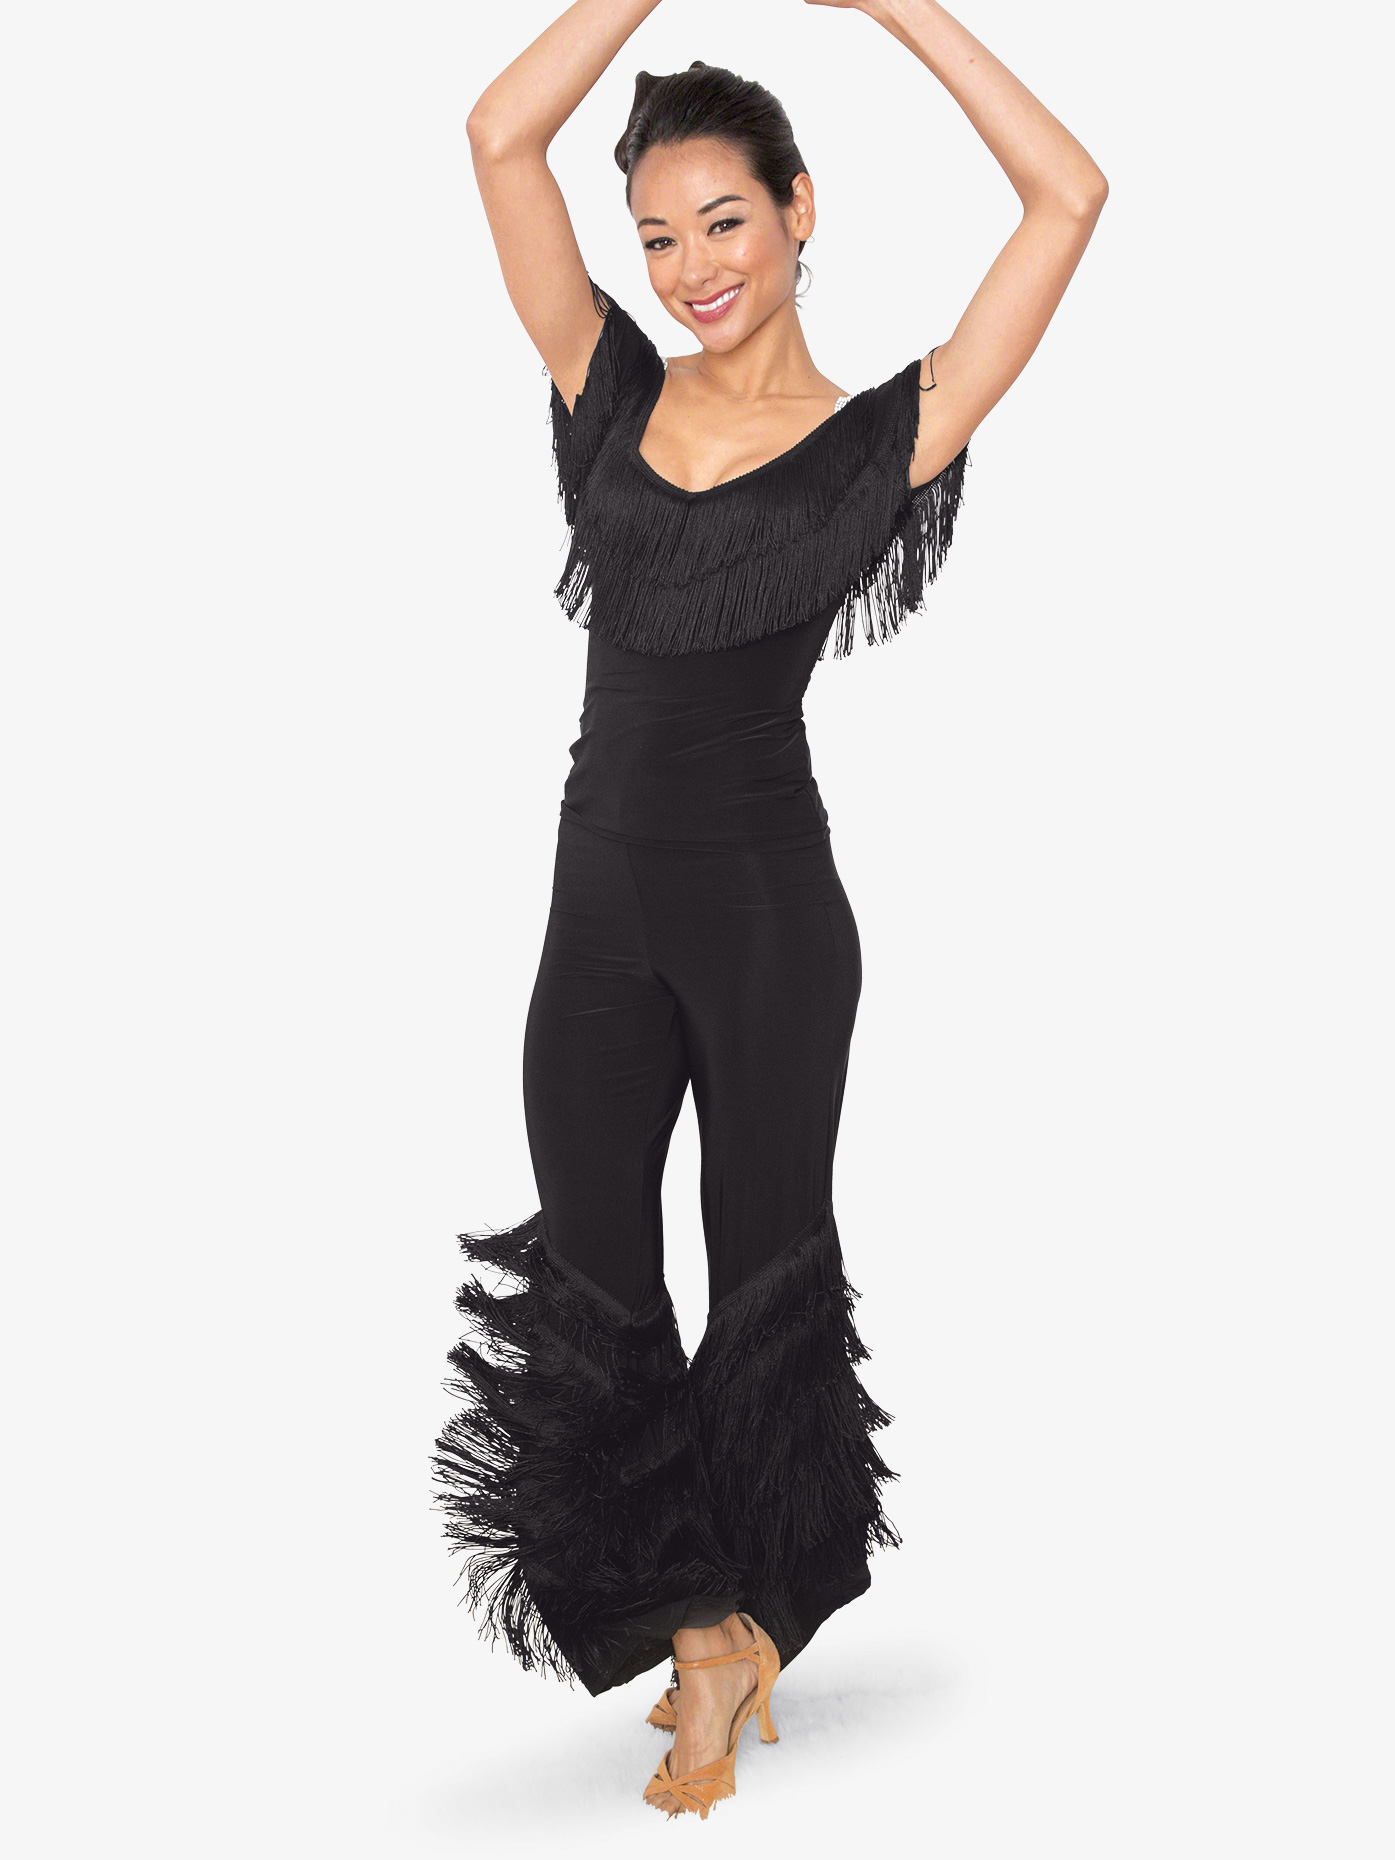 76cf503ad Womens Diagonal Fringe Ballroom Dance Pants - Style No P804. Loading zoom